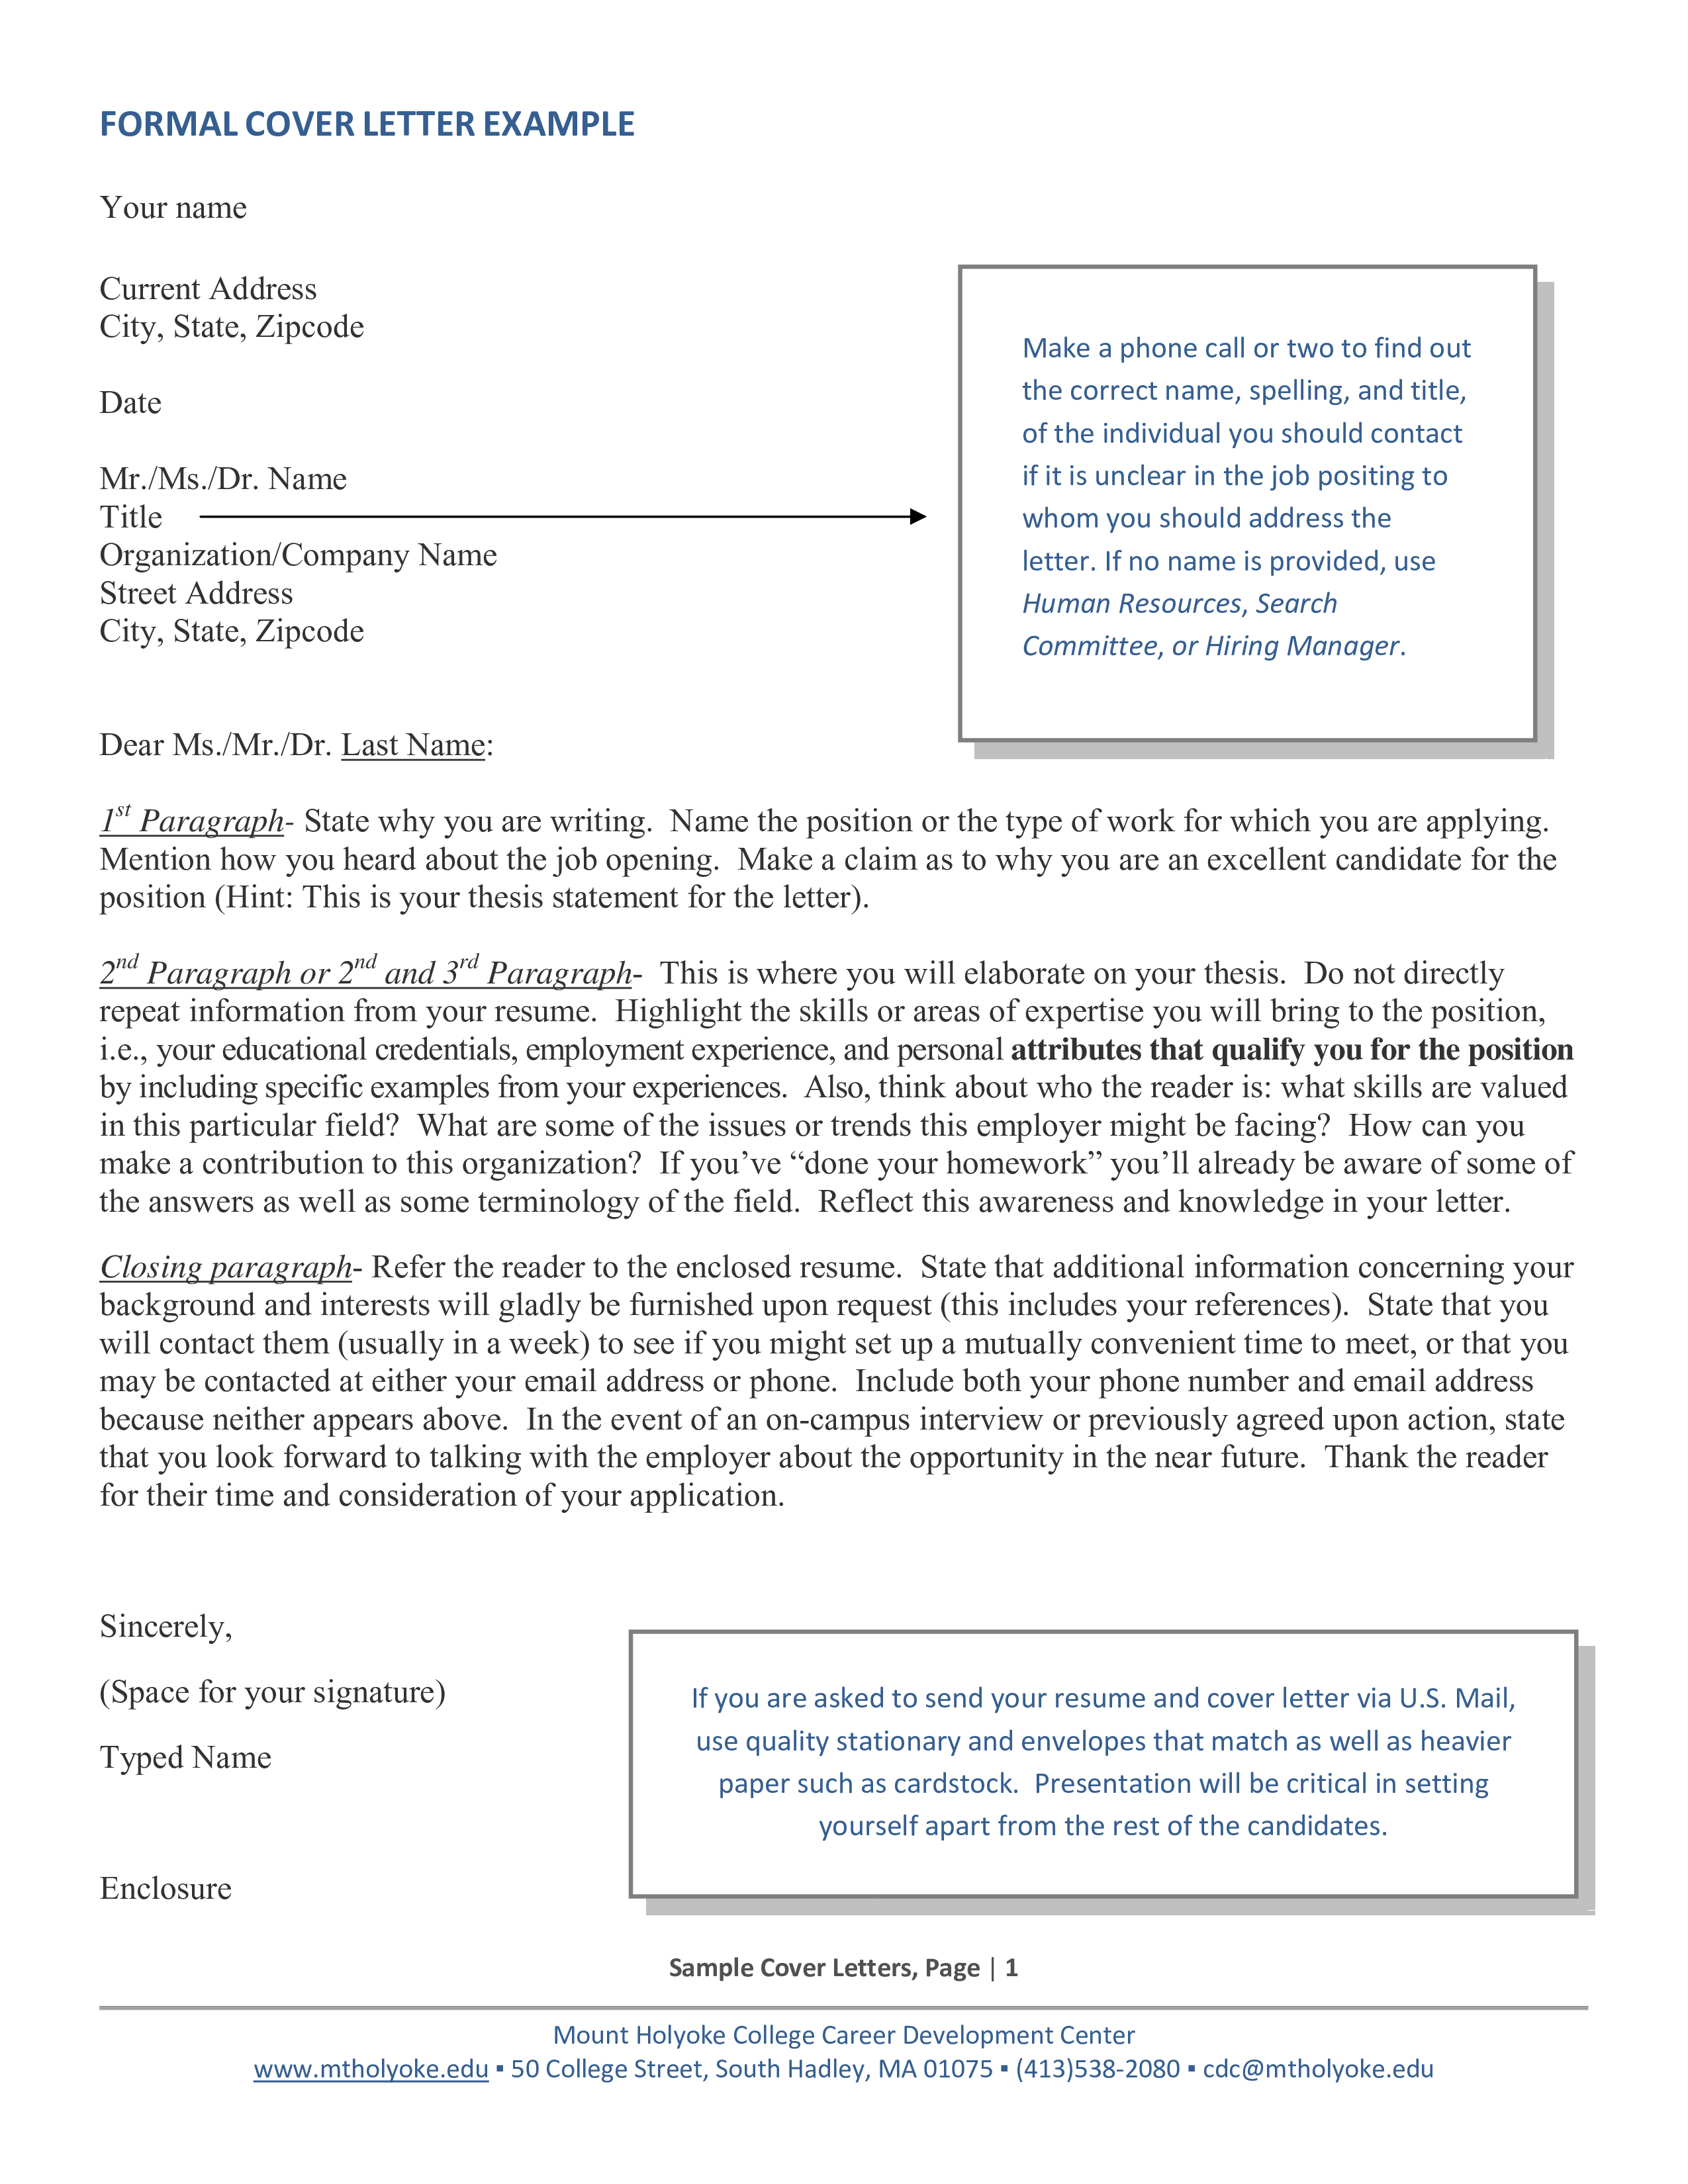 Formal Resume Application Cover Letter | Templates at ...